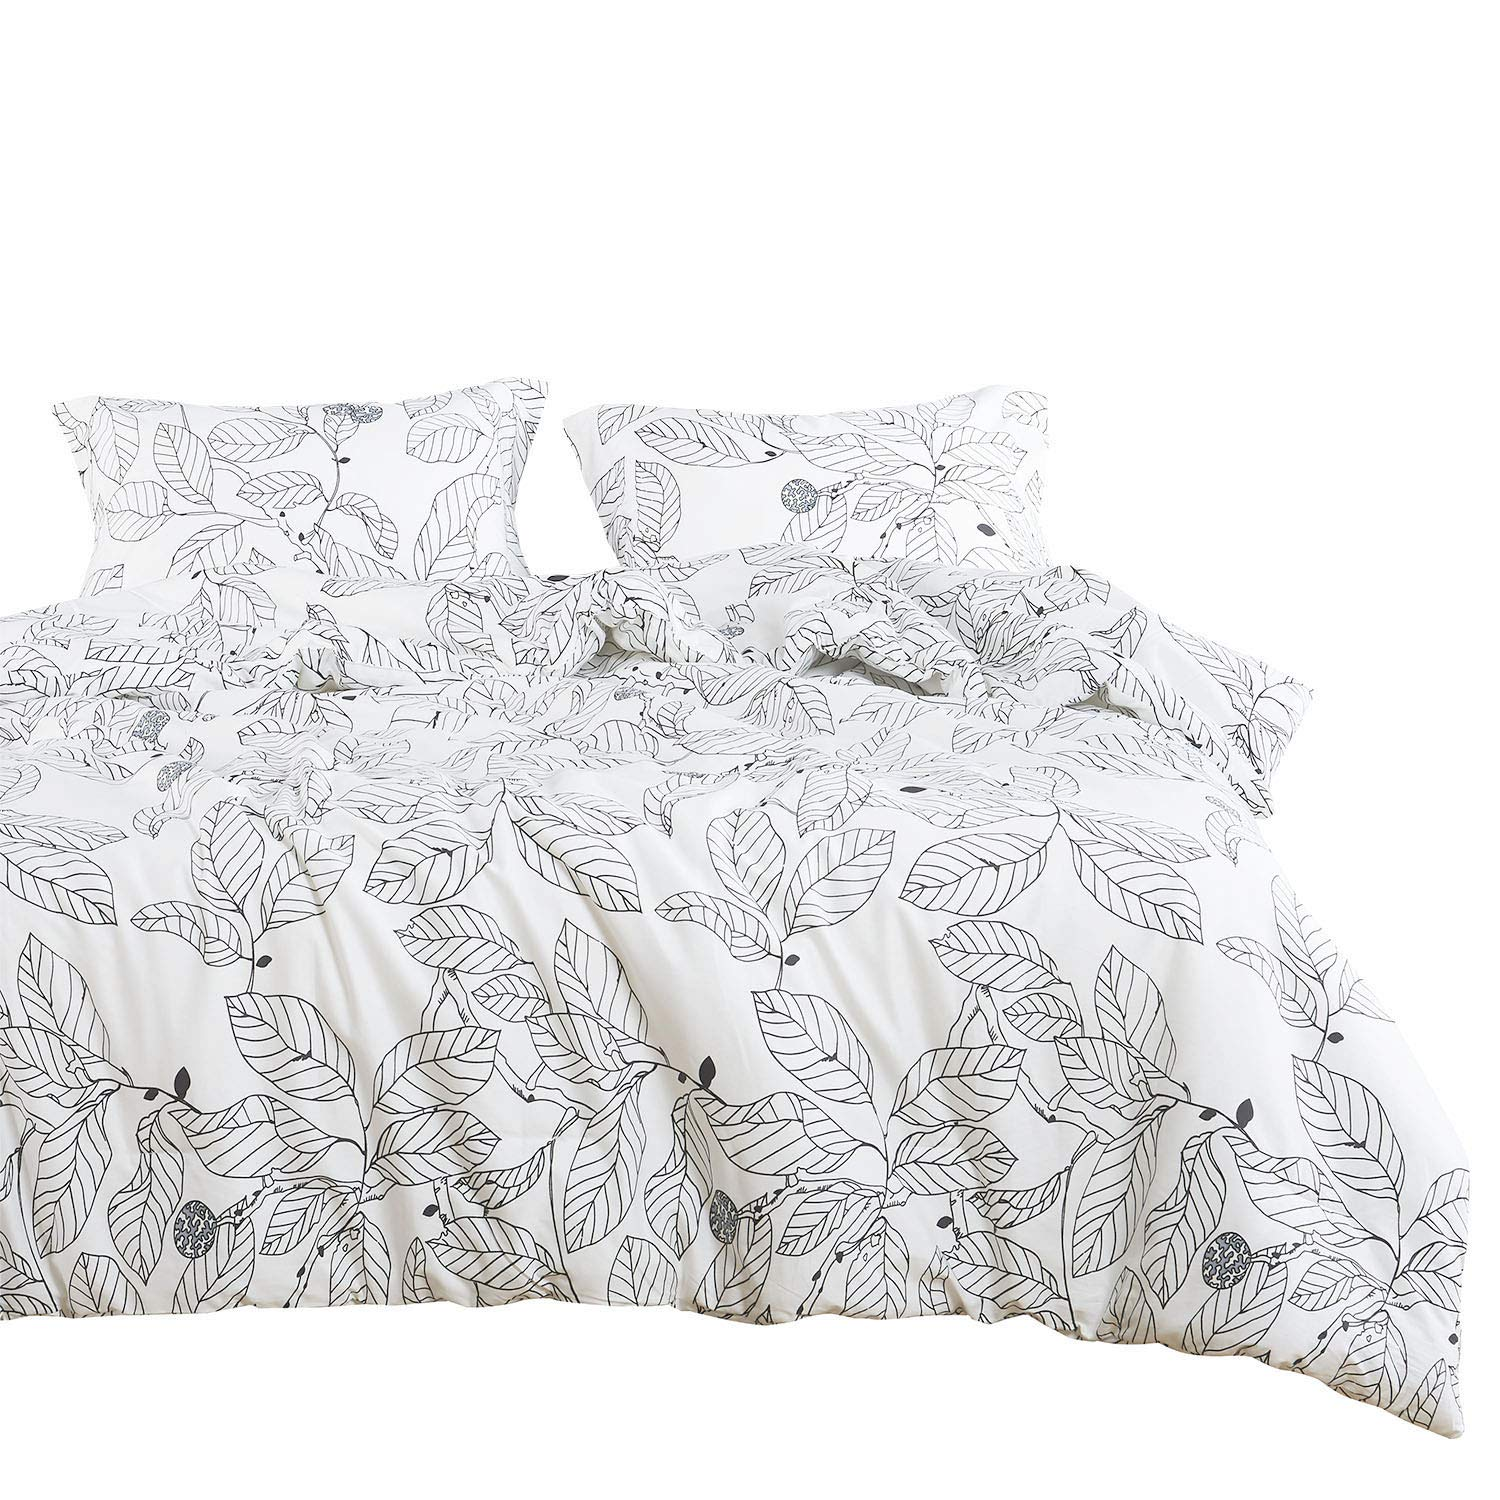 Wake In Cloud - Tree Duvet Cover Set, 100% Cotton Bedding, Black Branches Leaves Pattern Printed on White, with Zipper Closure (3pcs, Queen Size)